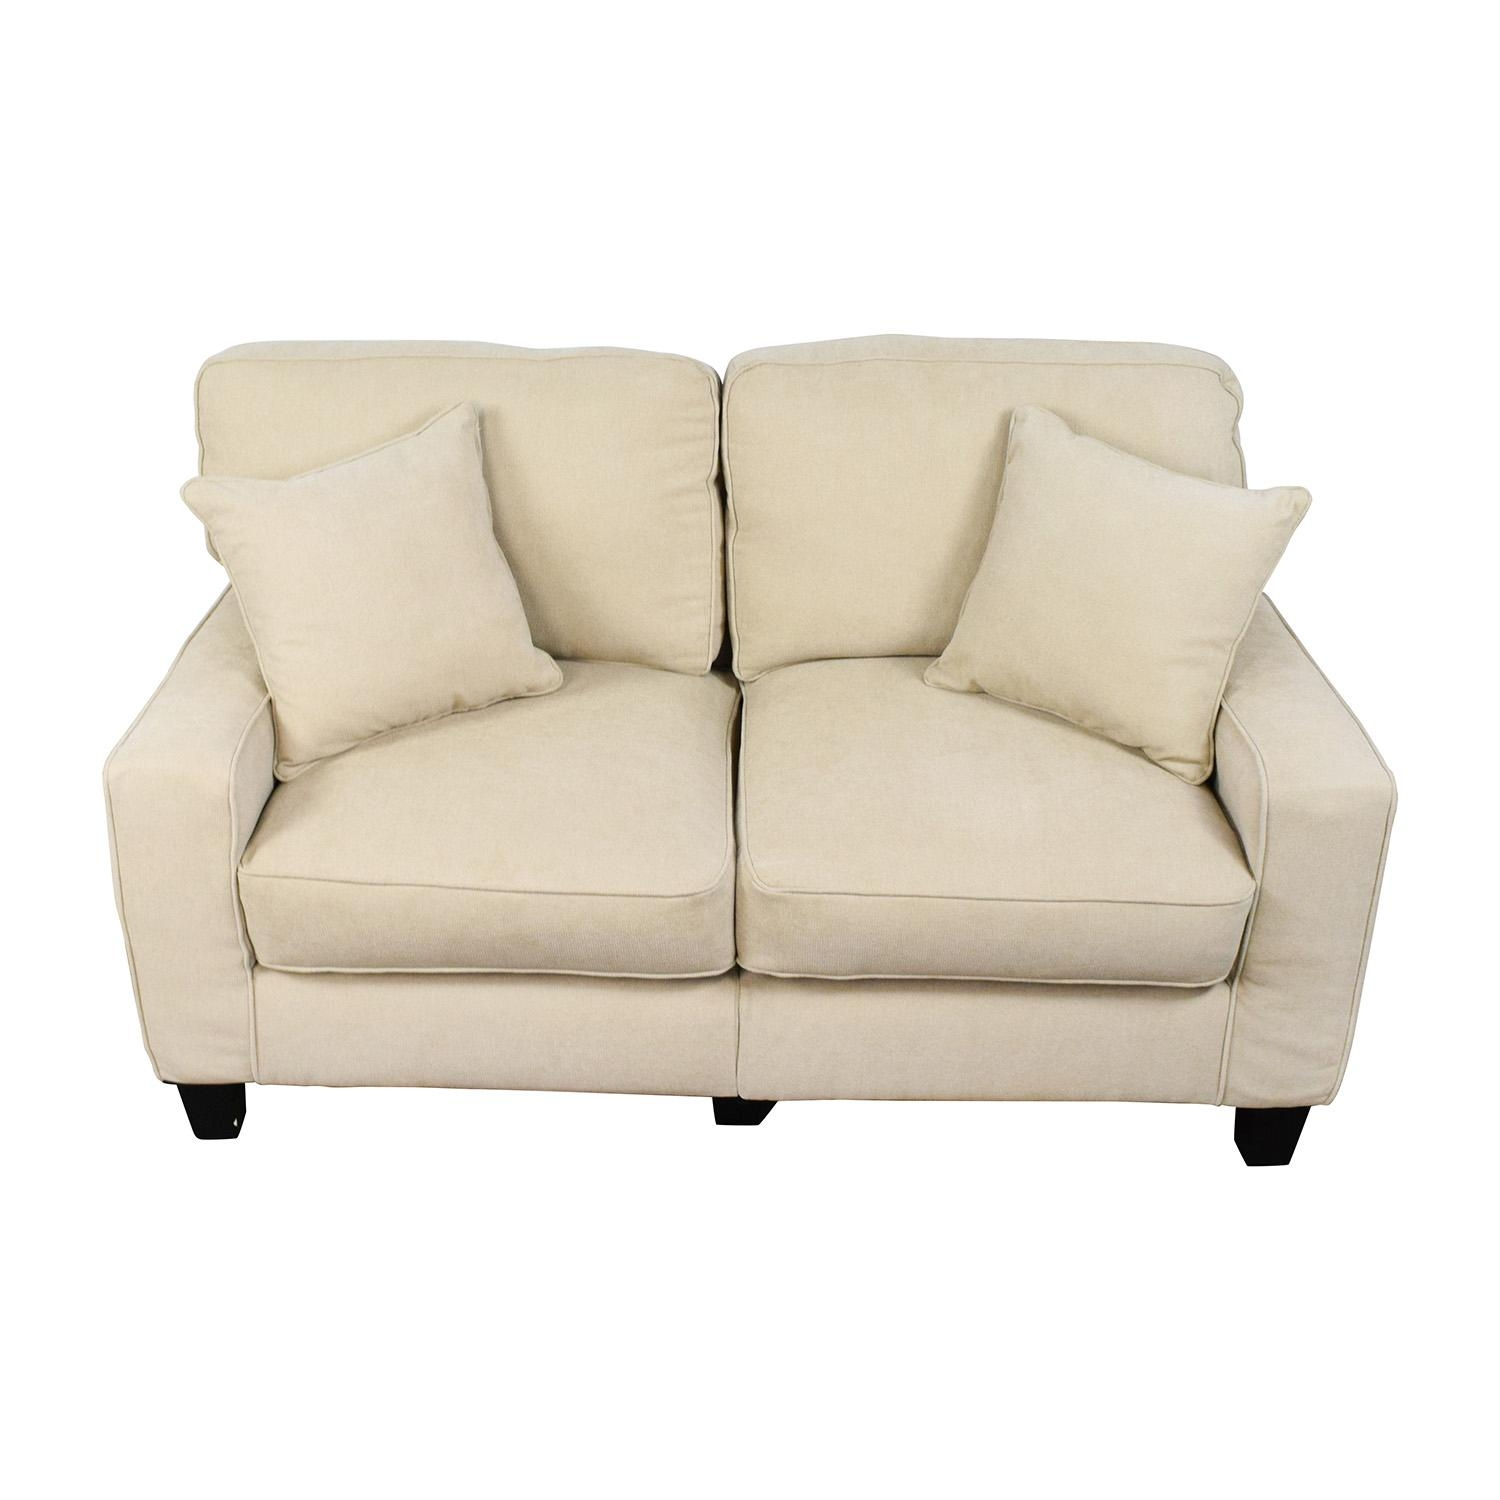 Furniture: Stunning Pier One Loveseat For Perfect Living Room Within Pier 1 Sofa Beds (View 10 of 20)